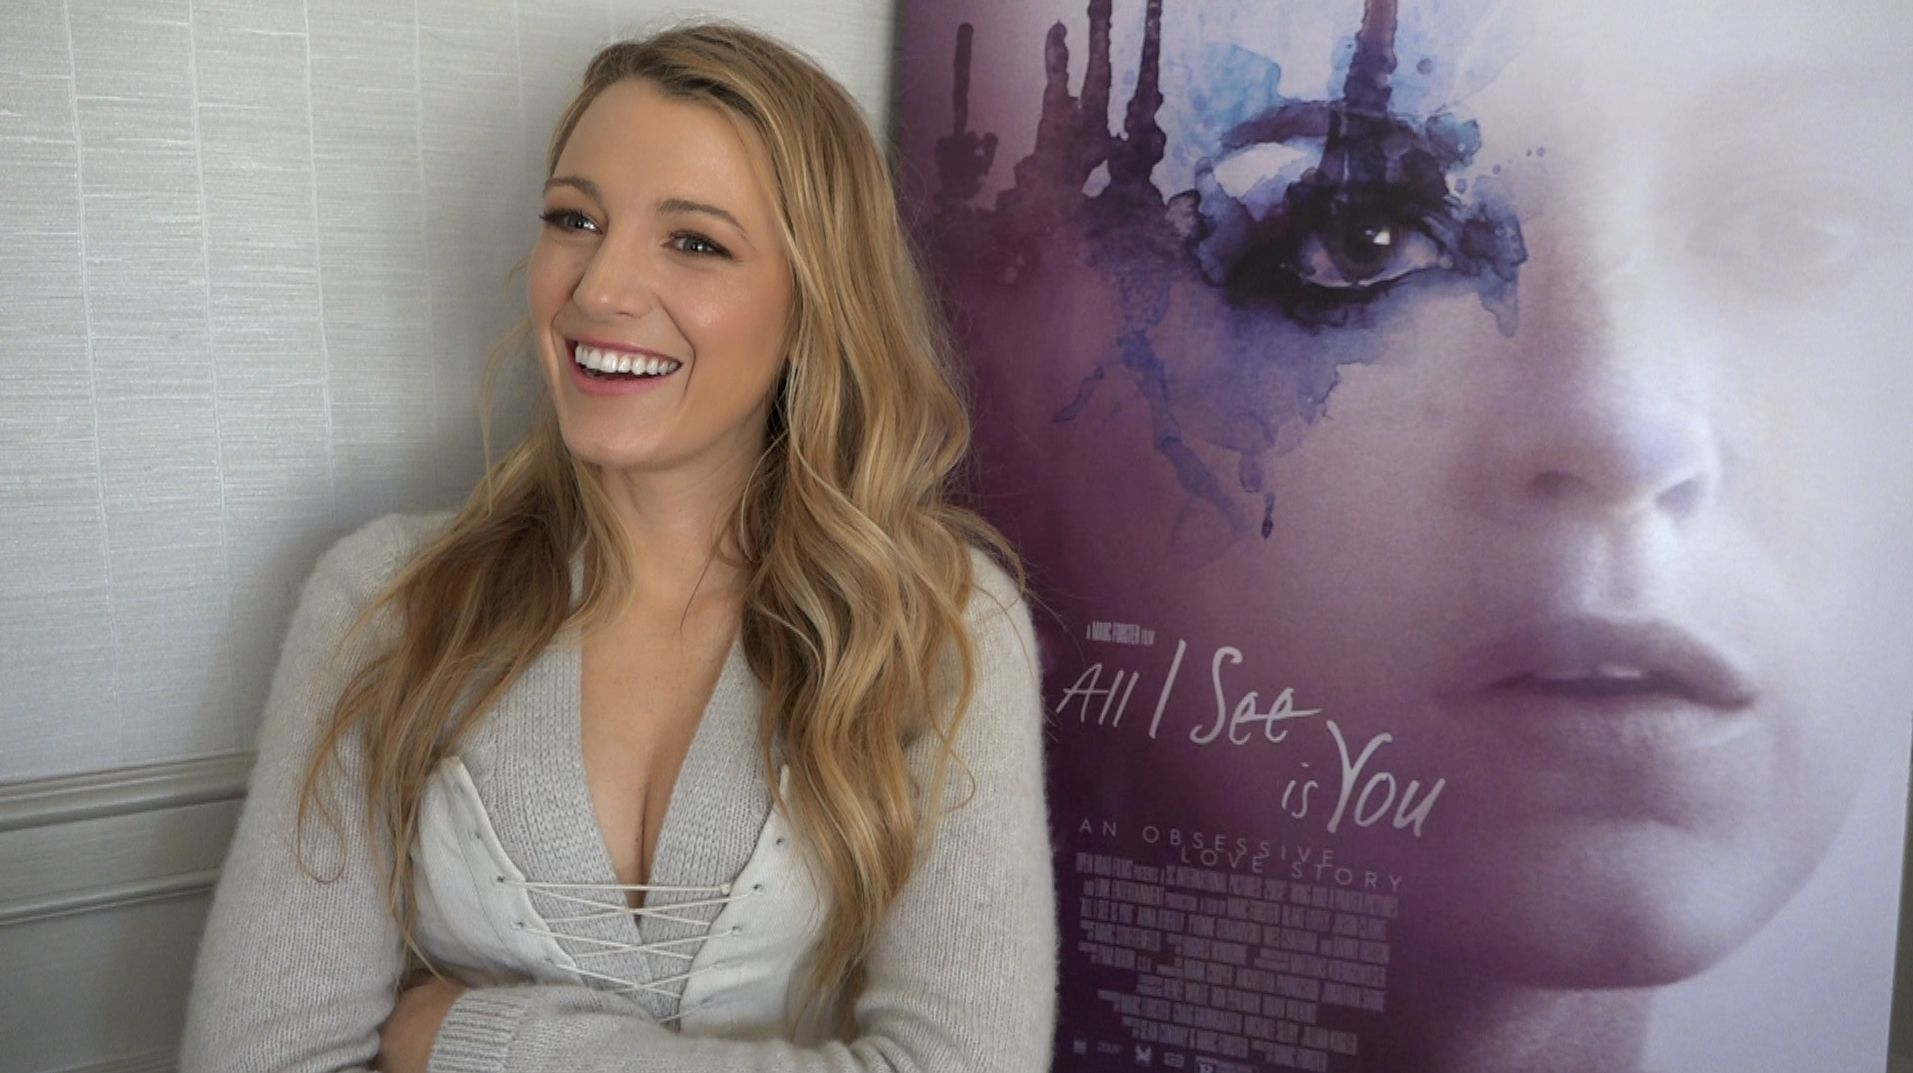 Blake Lively On All I See Is You And Paul Feig S A Simple